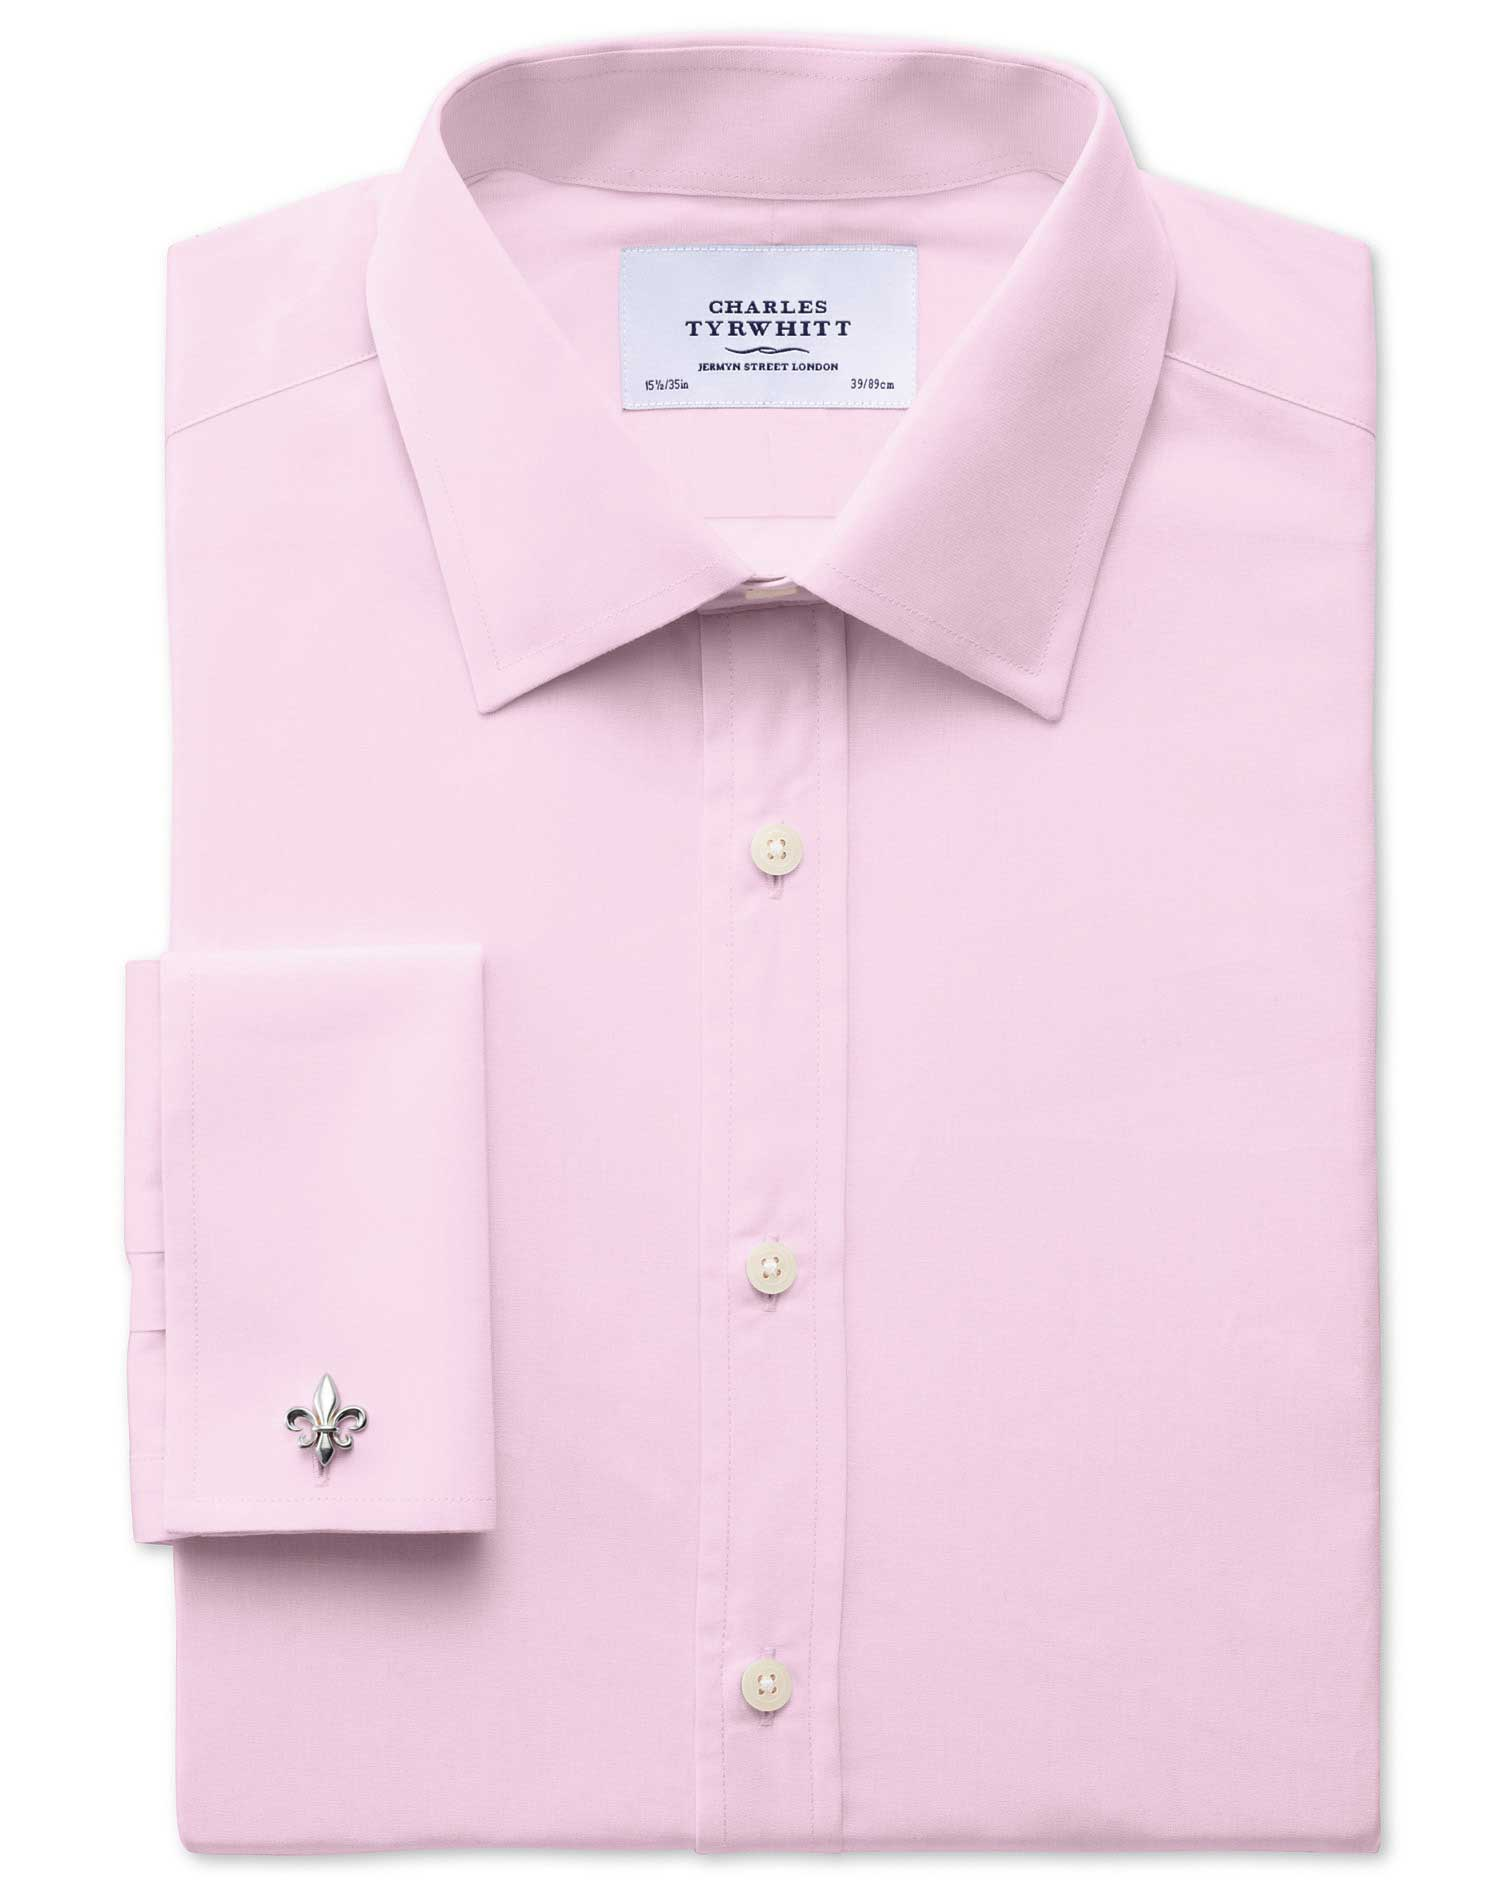 Classic Fit End-On-End Pink Cotton Formal Shirt Double Cuff Size 16.5/38 by Charles Tyrwhitt